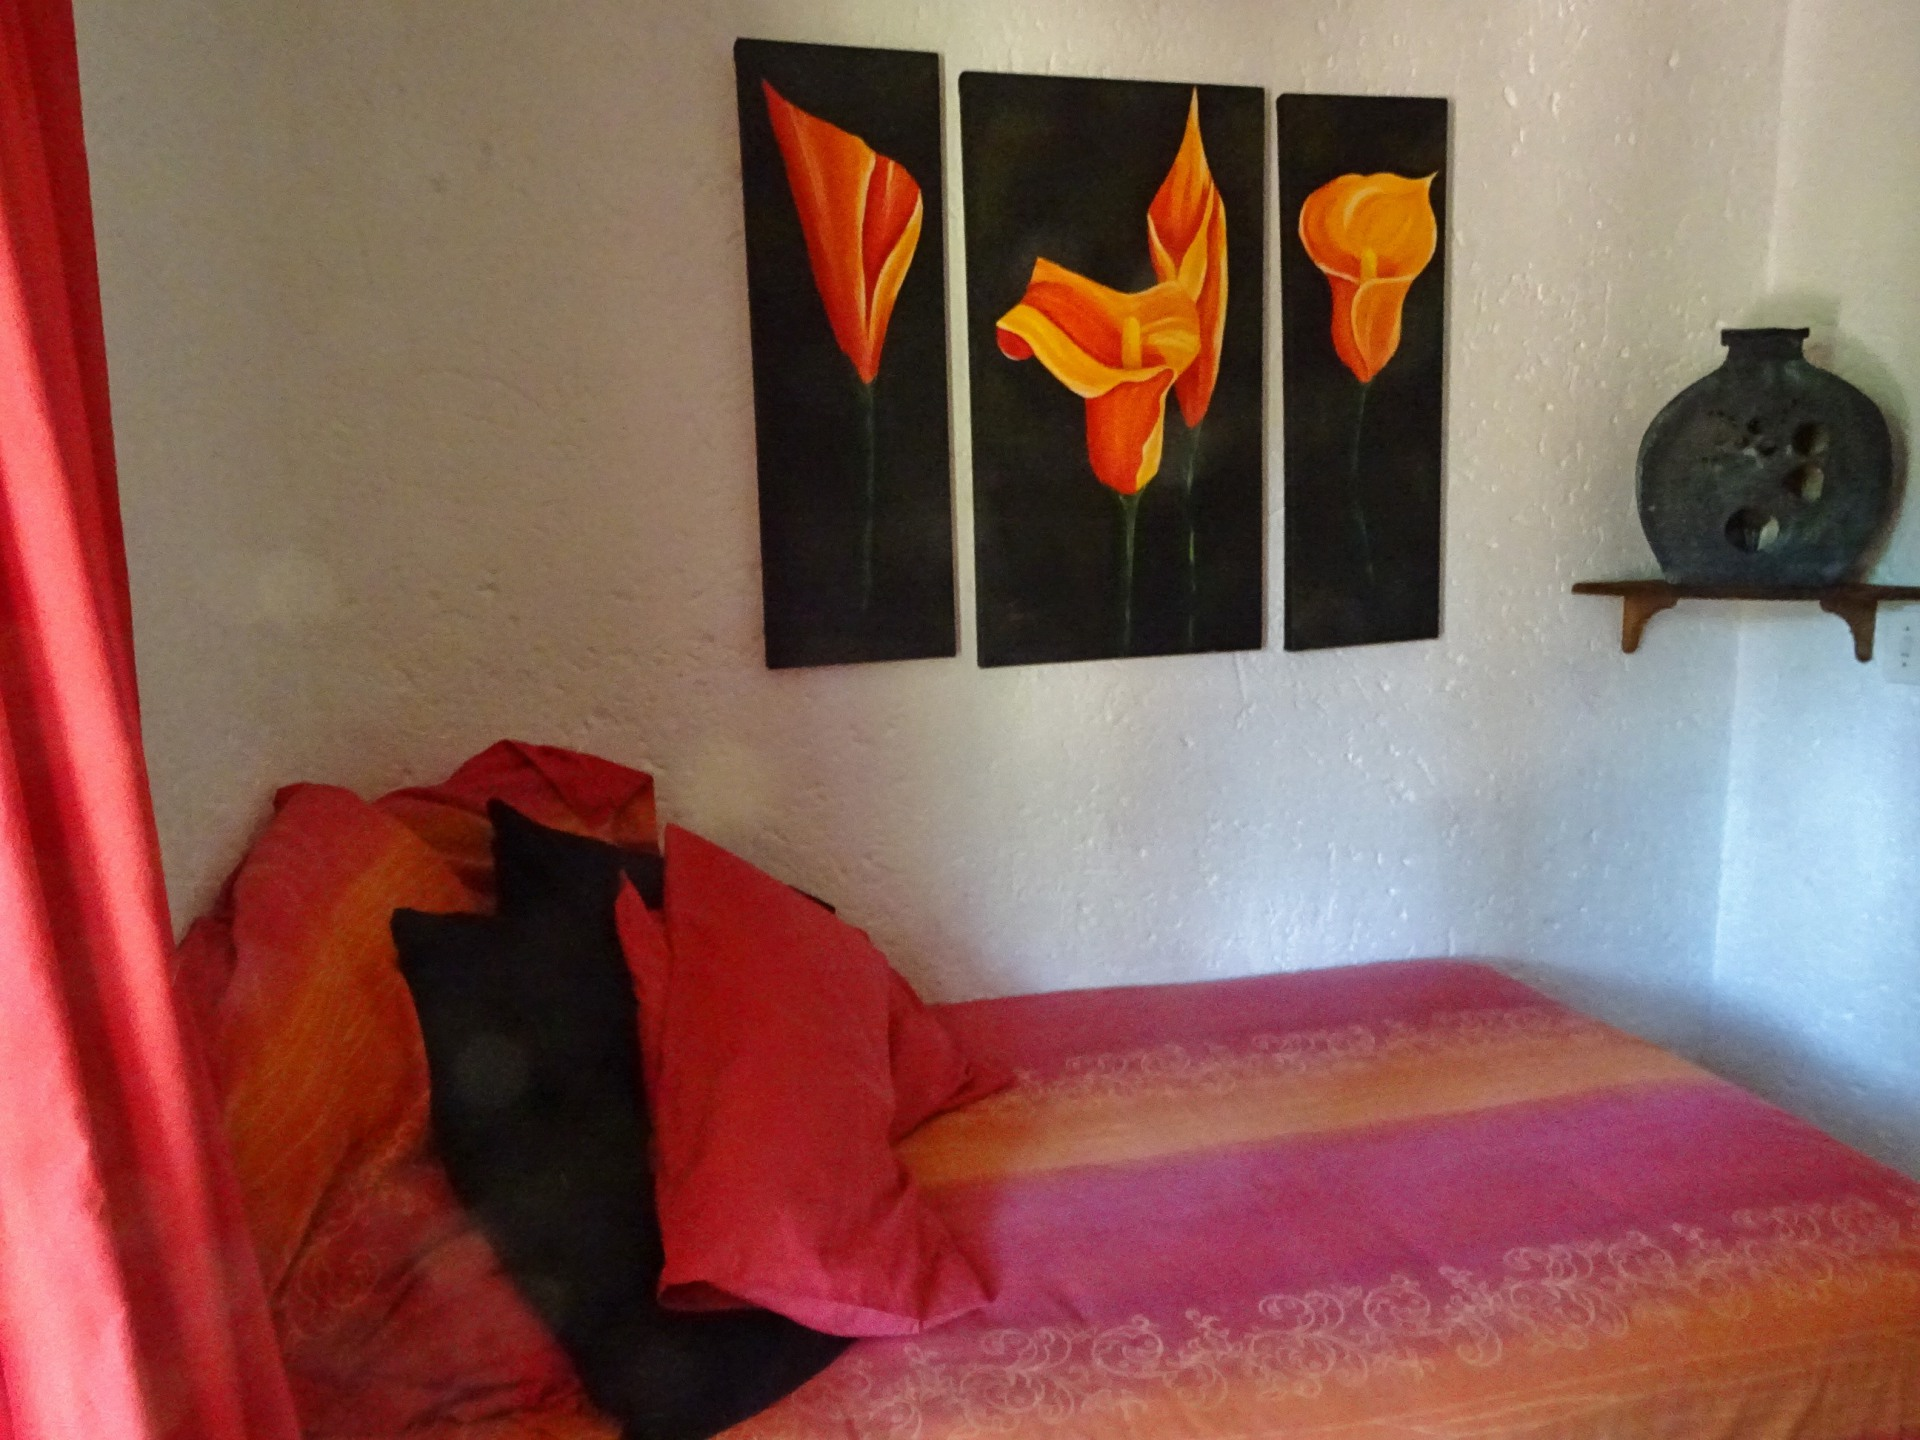 Red bedroom - Queen size bed & canvasses